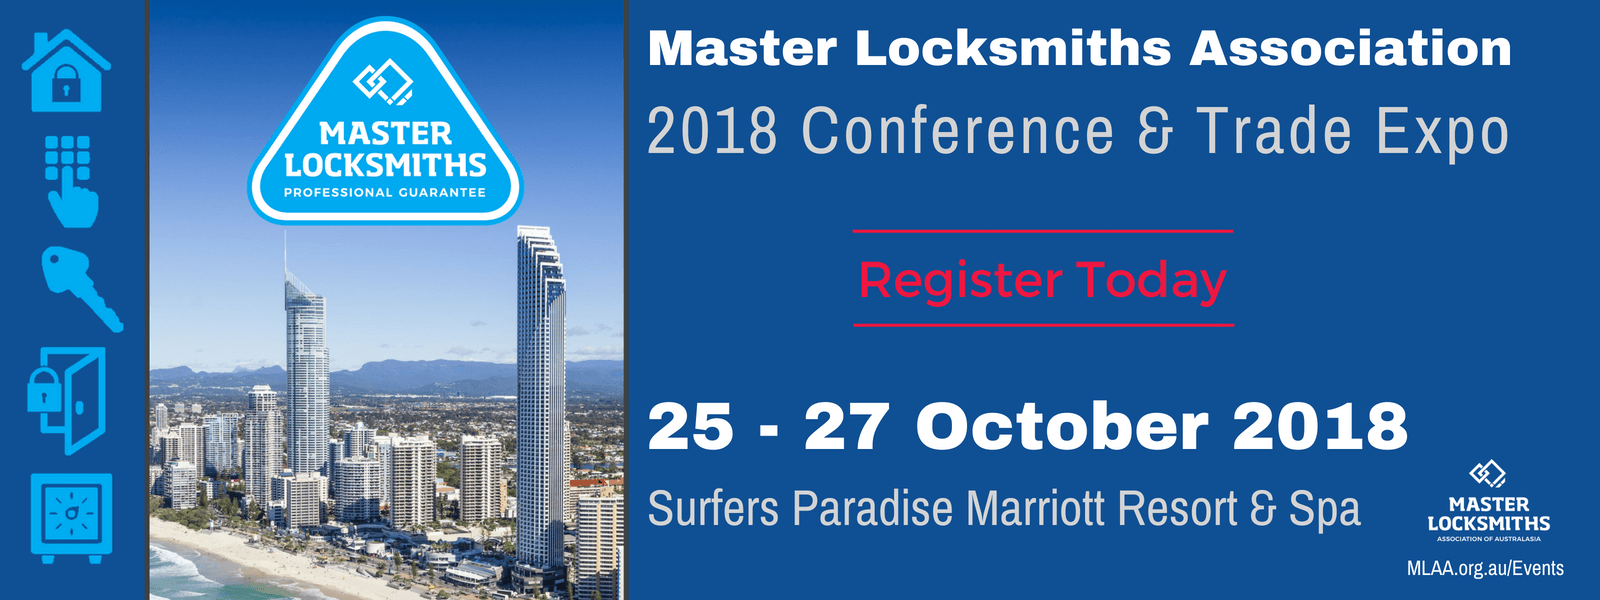 MLAA National Conference & Trade Expo 2018 Gold Coast